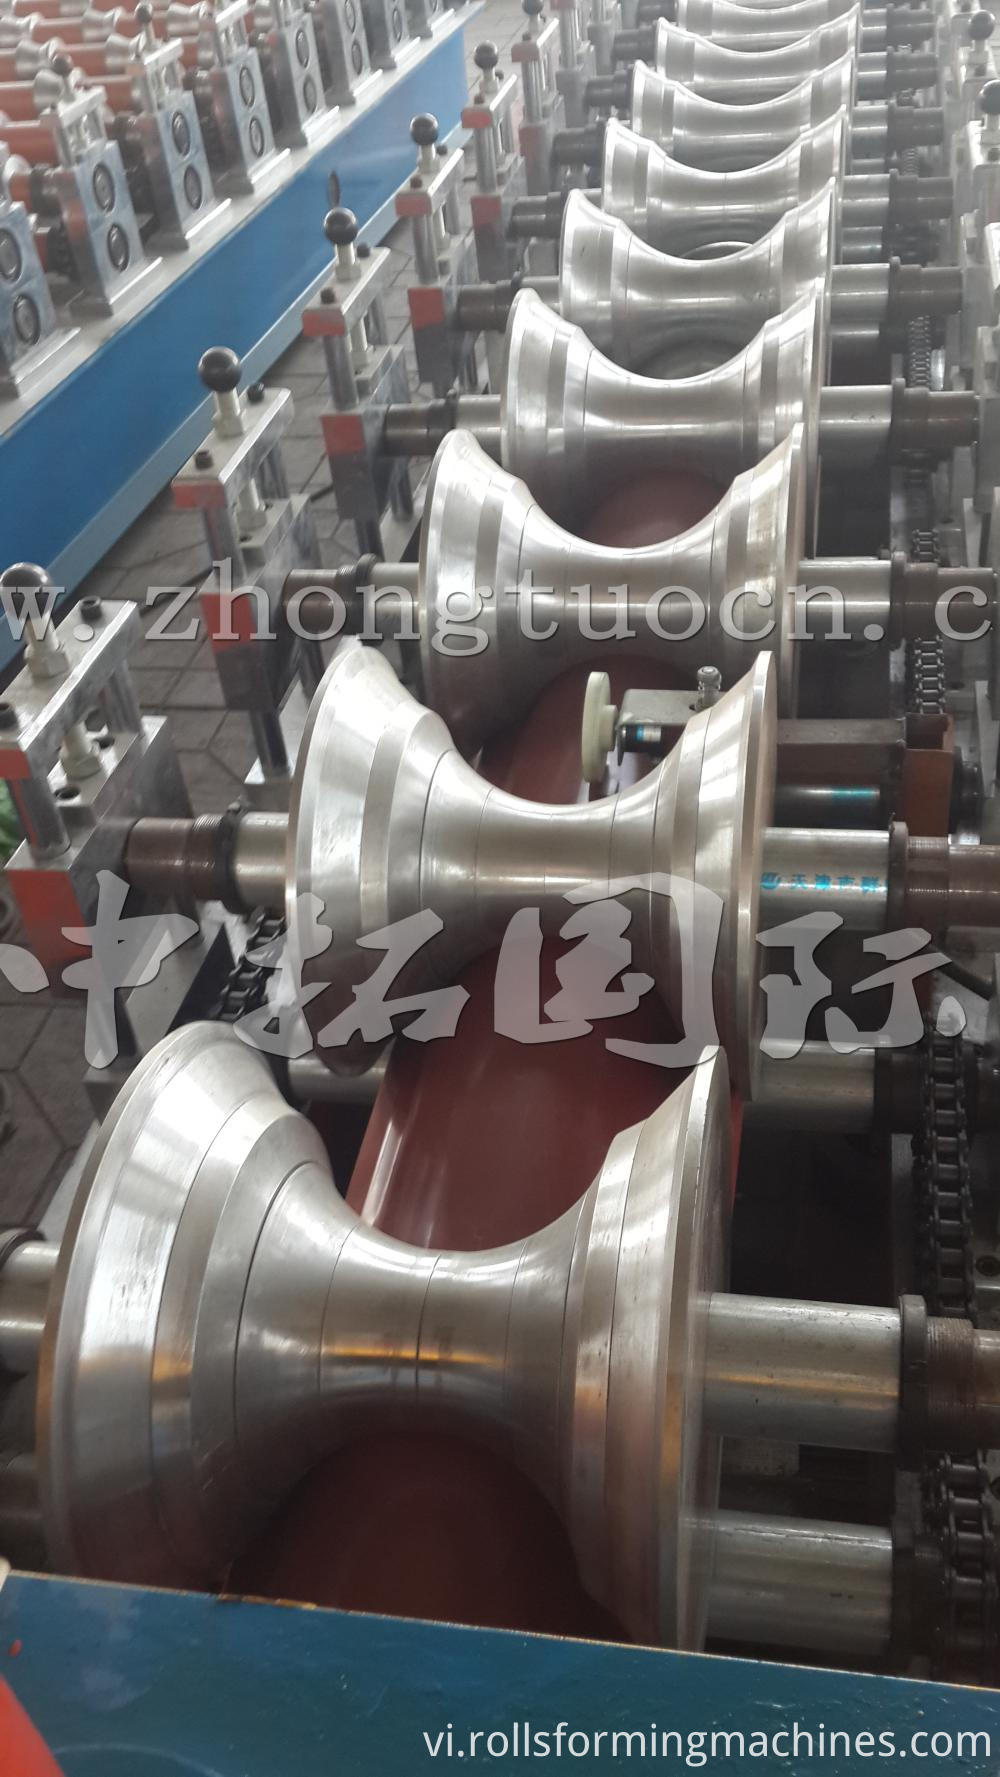 Ridge roll forming machine (18)